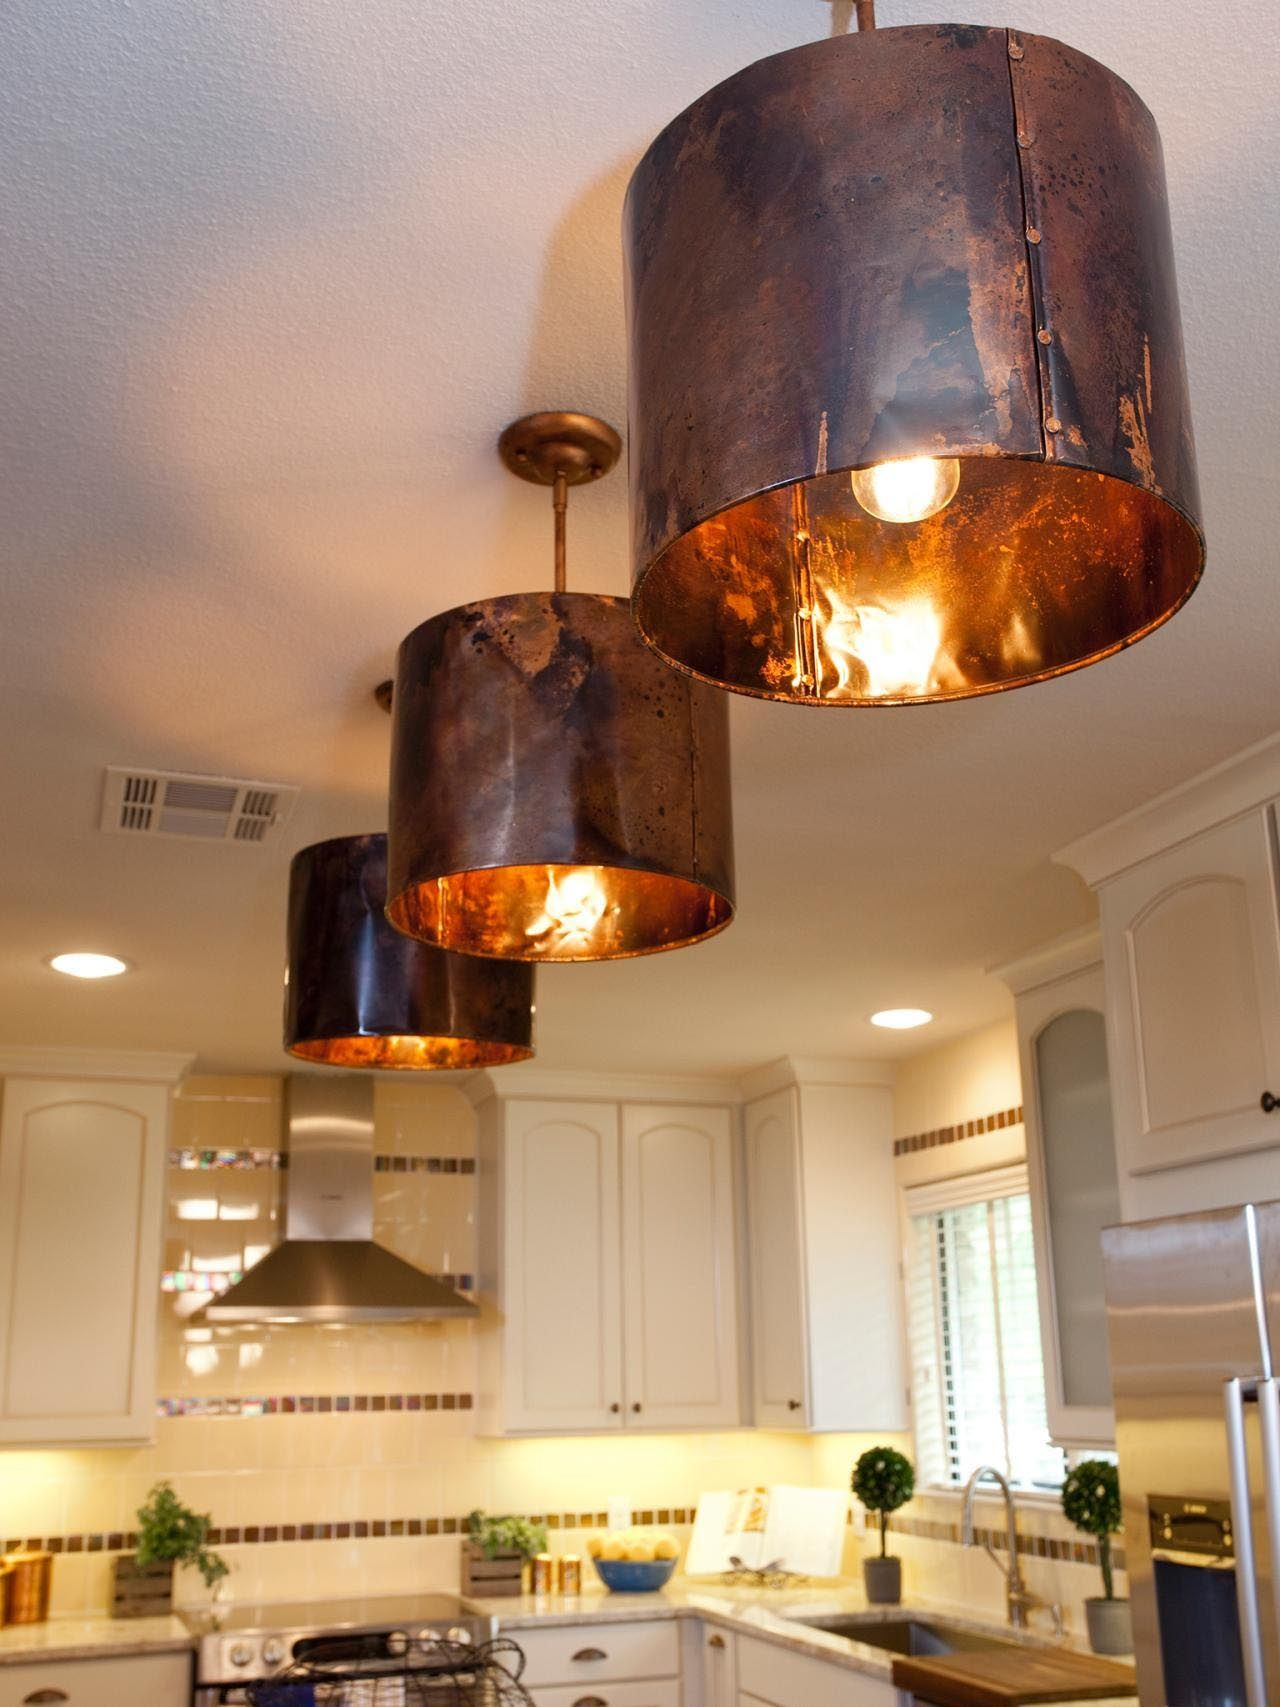 Copper Kitchen Ceiling Lights Kitchen Light Fixtures Add Value And - Copper kitchen ceiling lights